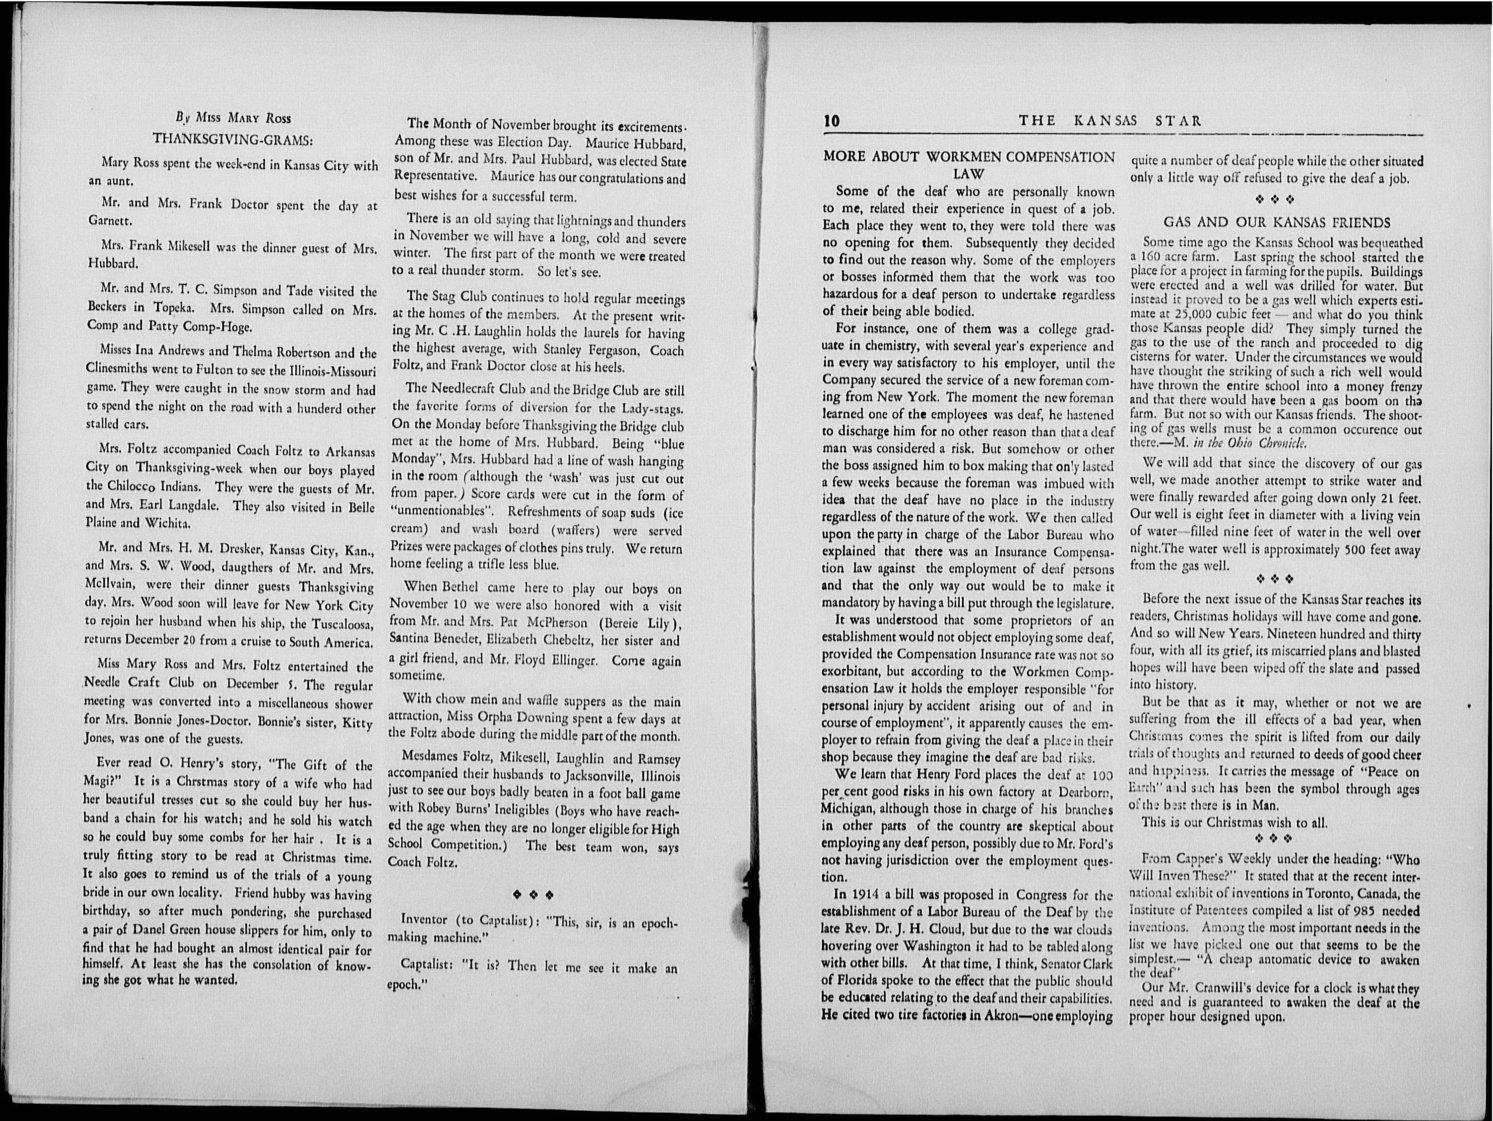 The Kansas Star, volume 58, number 3 - Not numbered-10